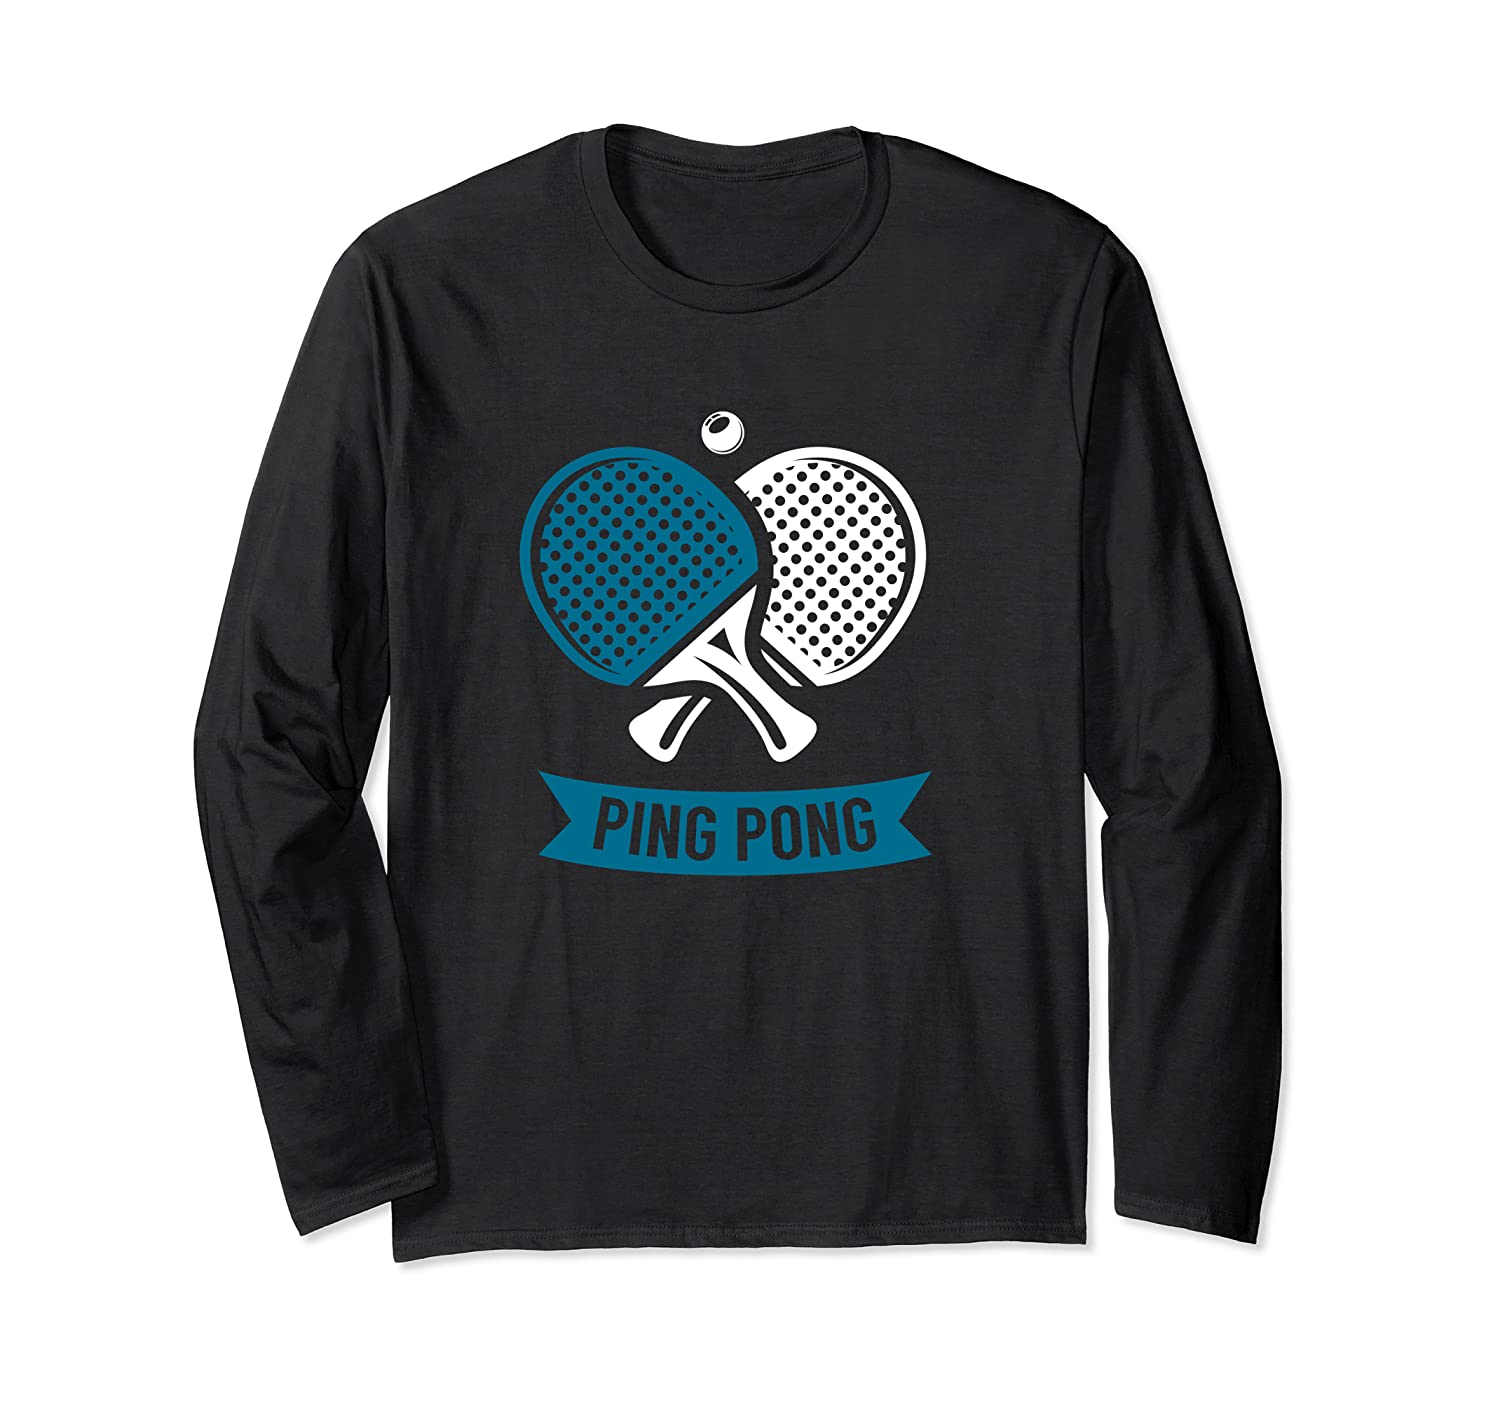 Amazon.com: Crossed Table Tennis Paddles Ping Pong Sport Tee ...